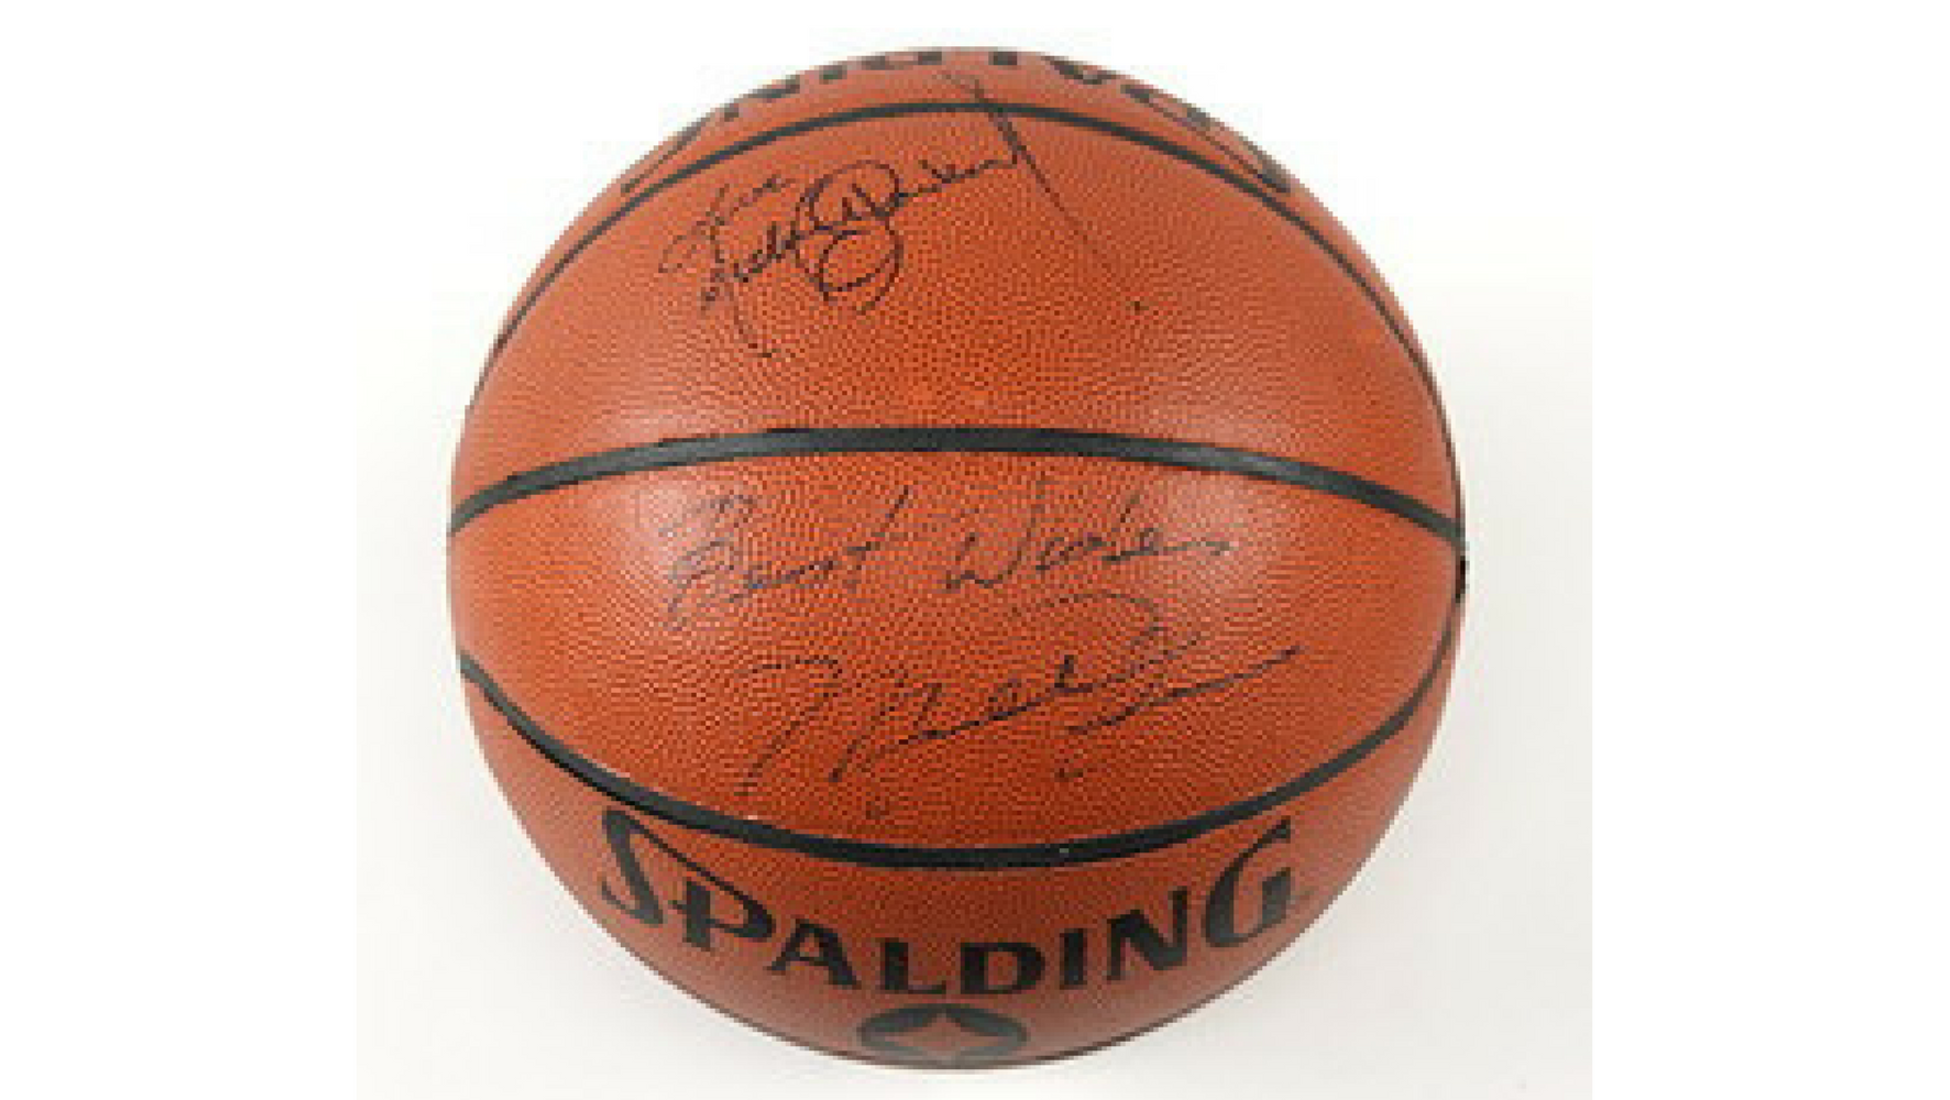 quality design 5e3c3 68b95 ... how to dance and Jordan shows Jackson how to play basketball. The ball  is signed by both, making it even more special. In 2010 it went up for  auction ...